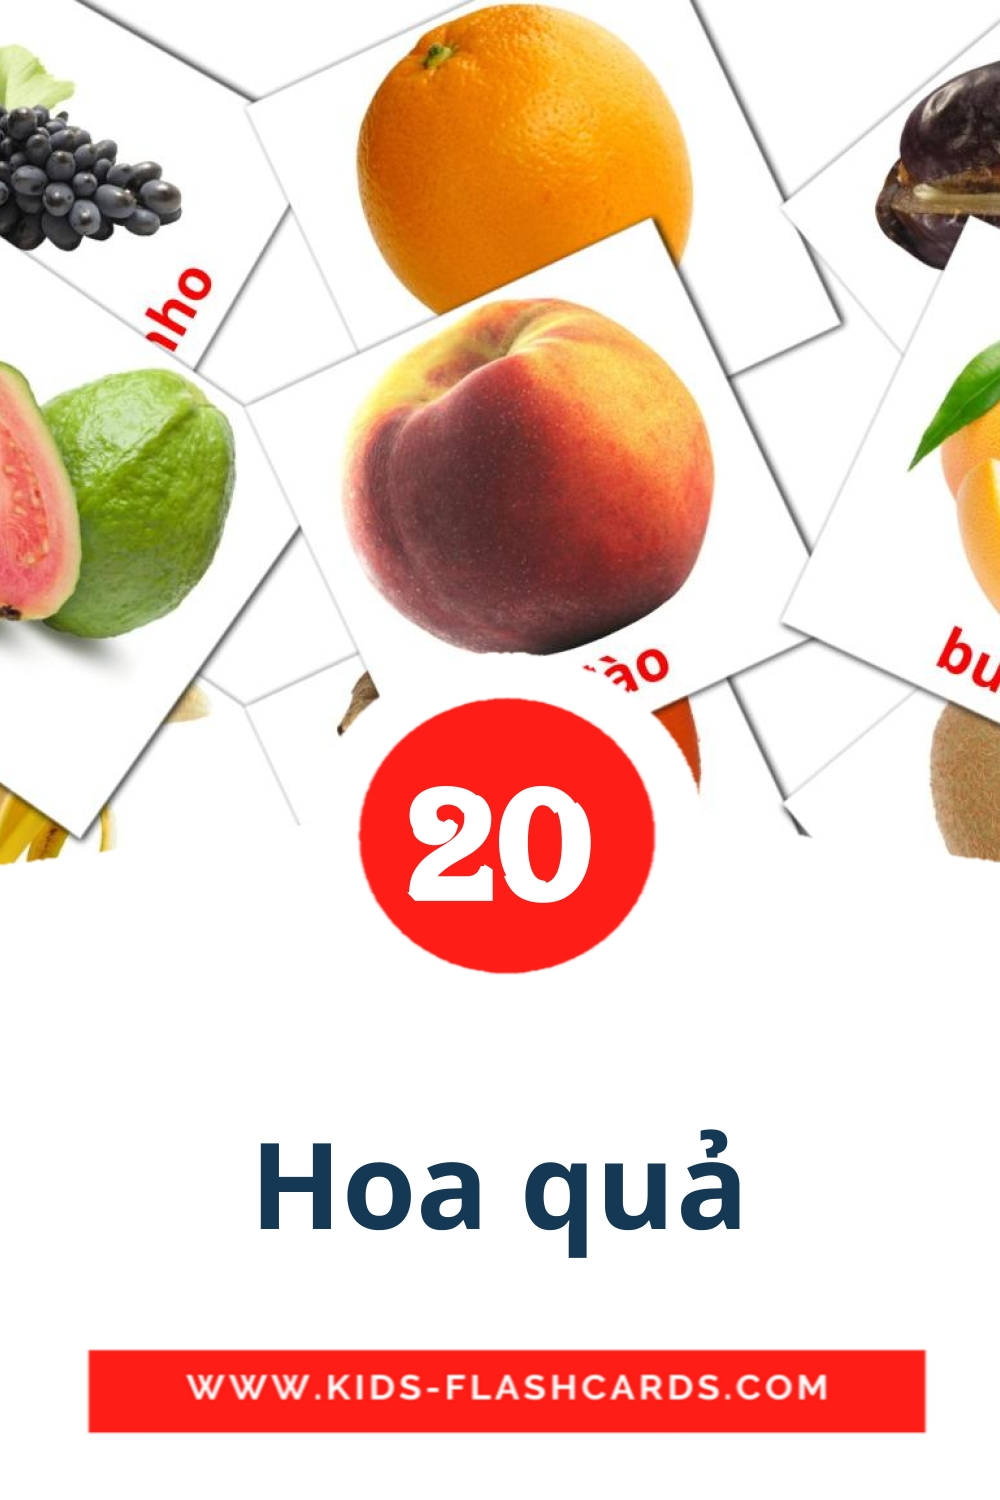 Hoa quả - free cards in vietnamese